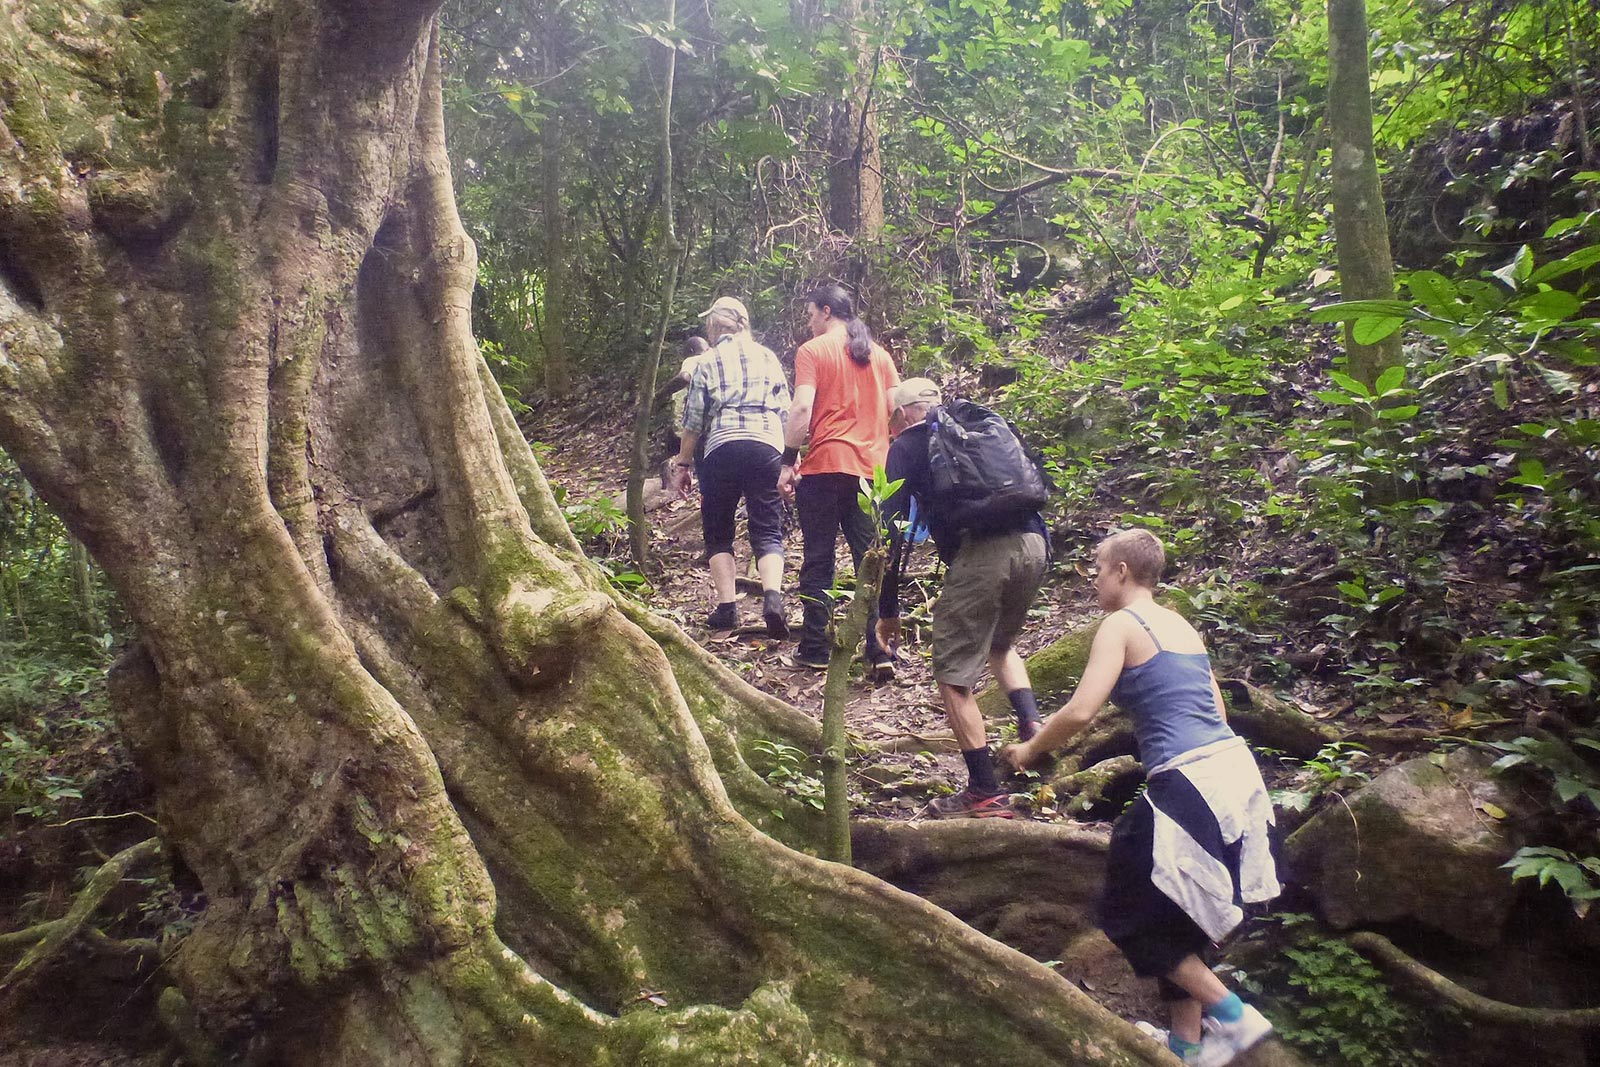 Day 6: Hike Adventure Across Bwindi Impenetrable Forest